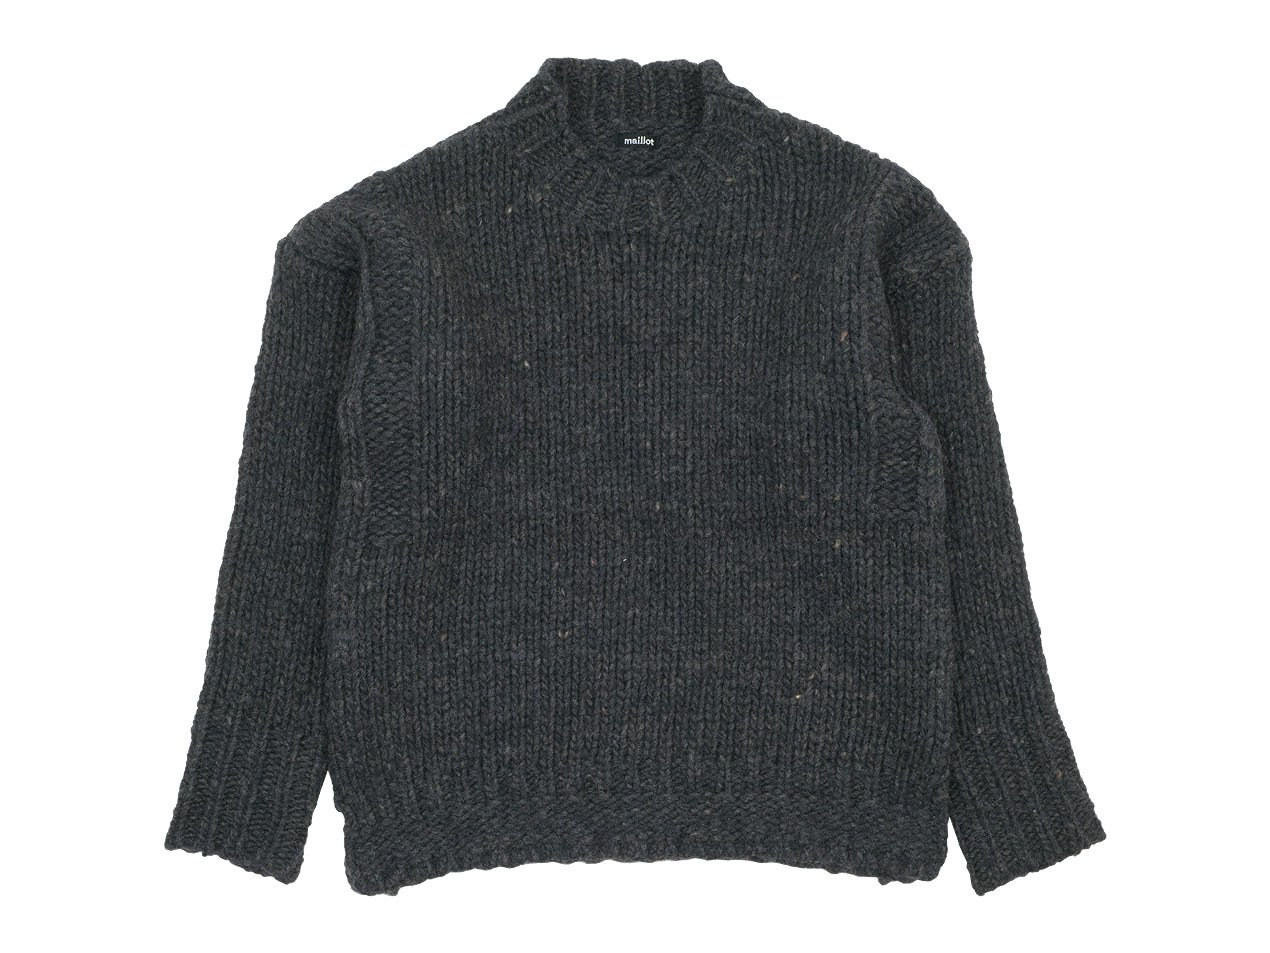 maillot mature hand frame fisherman sweater CHARCOAL